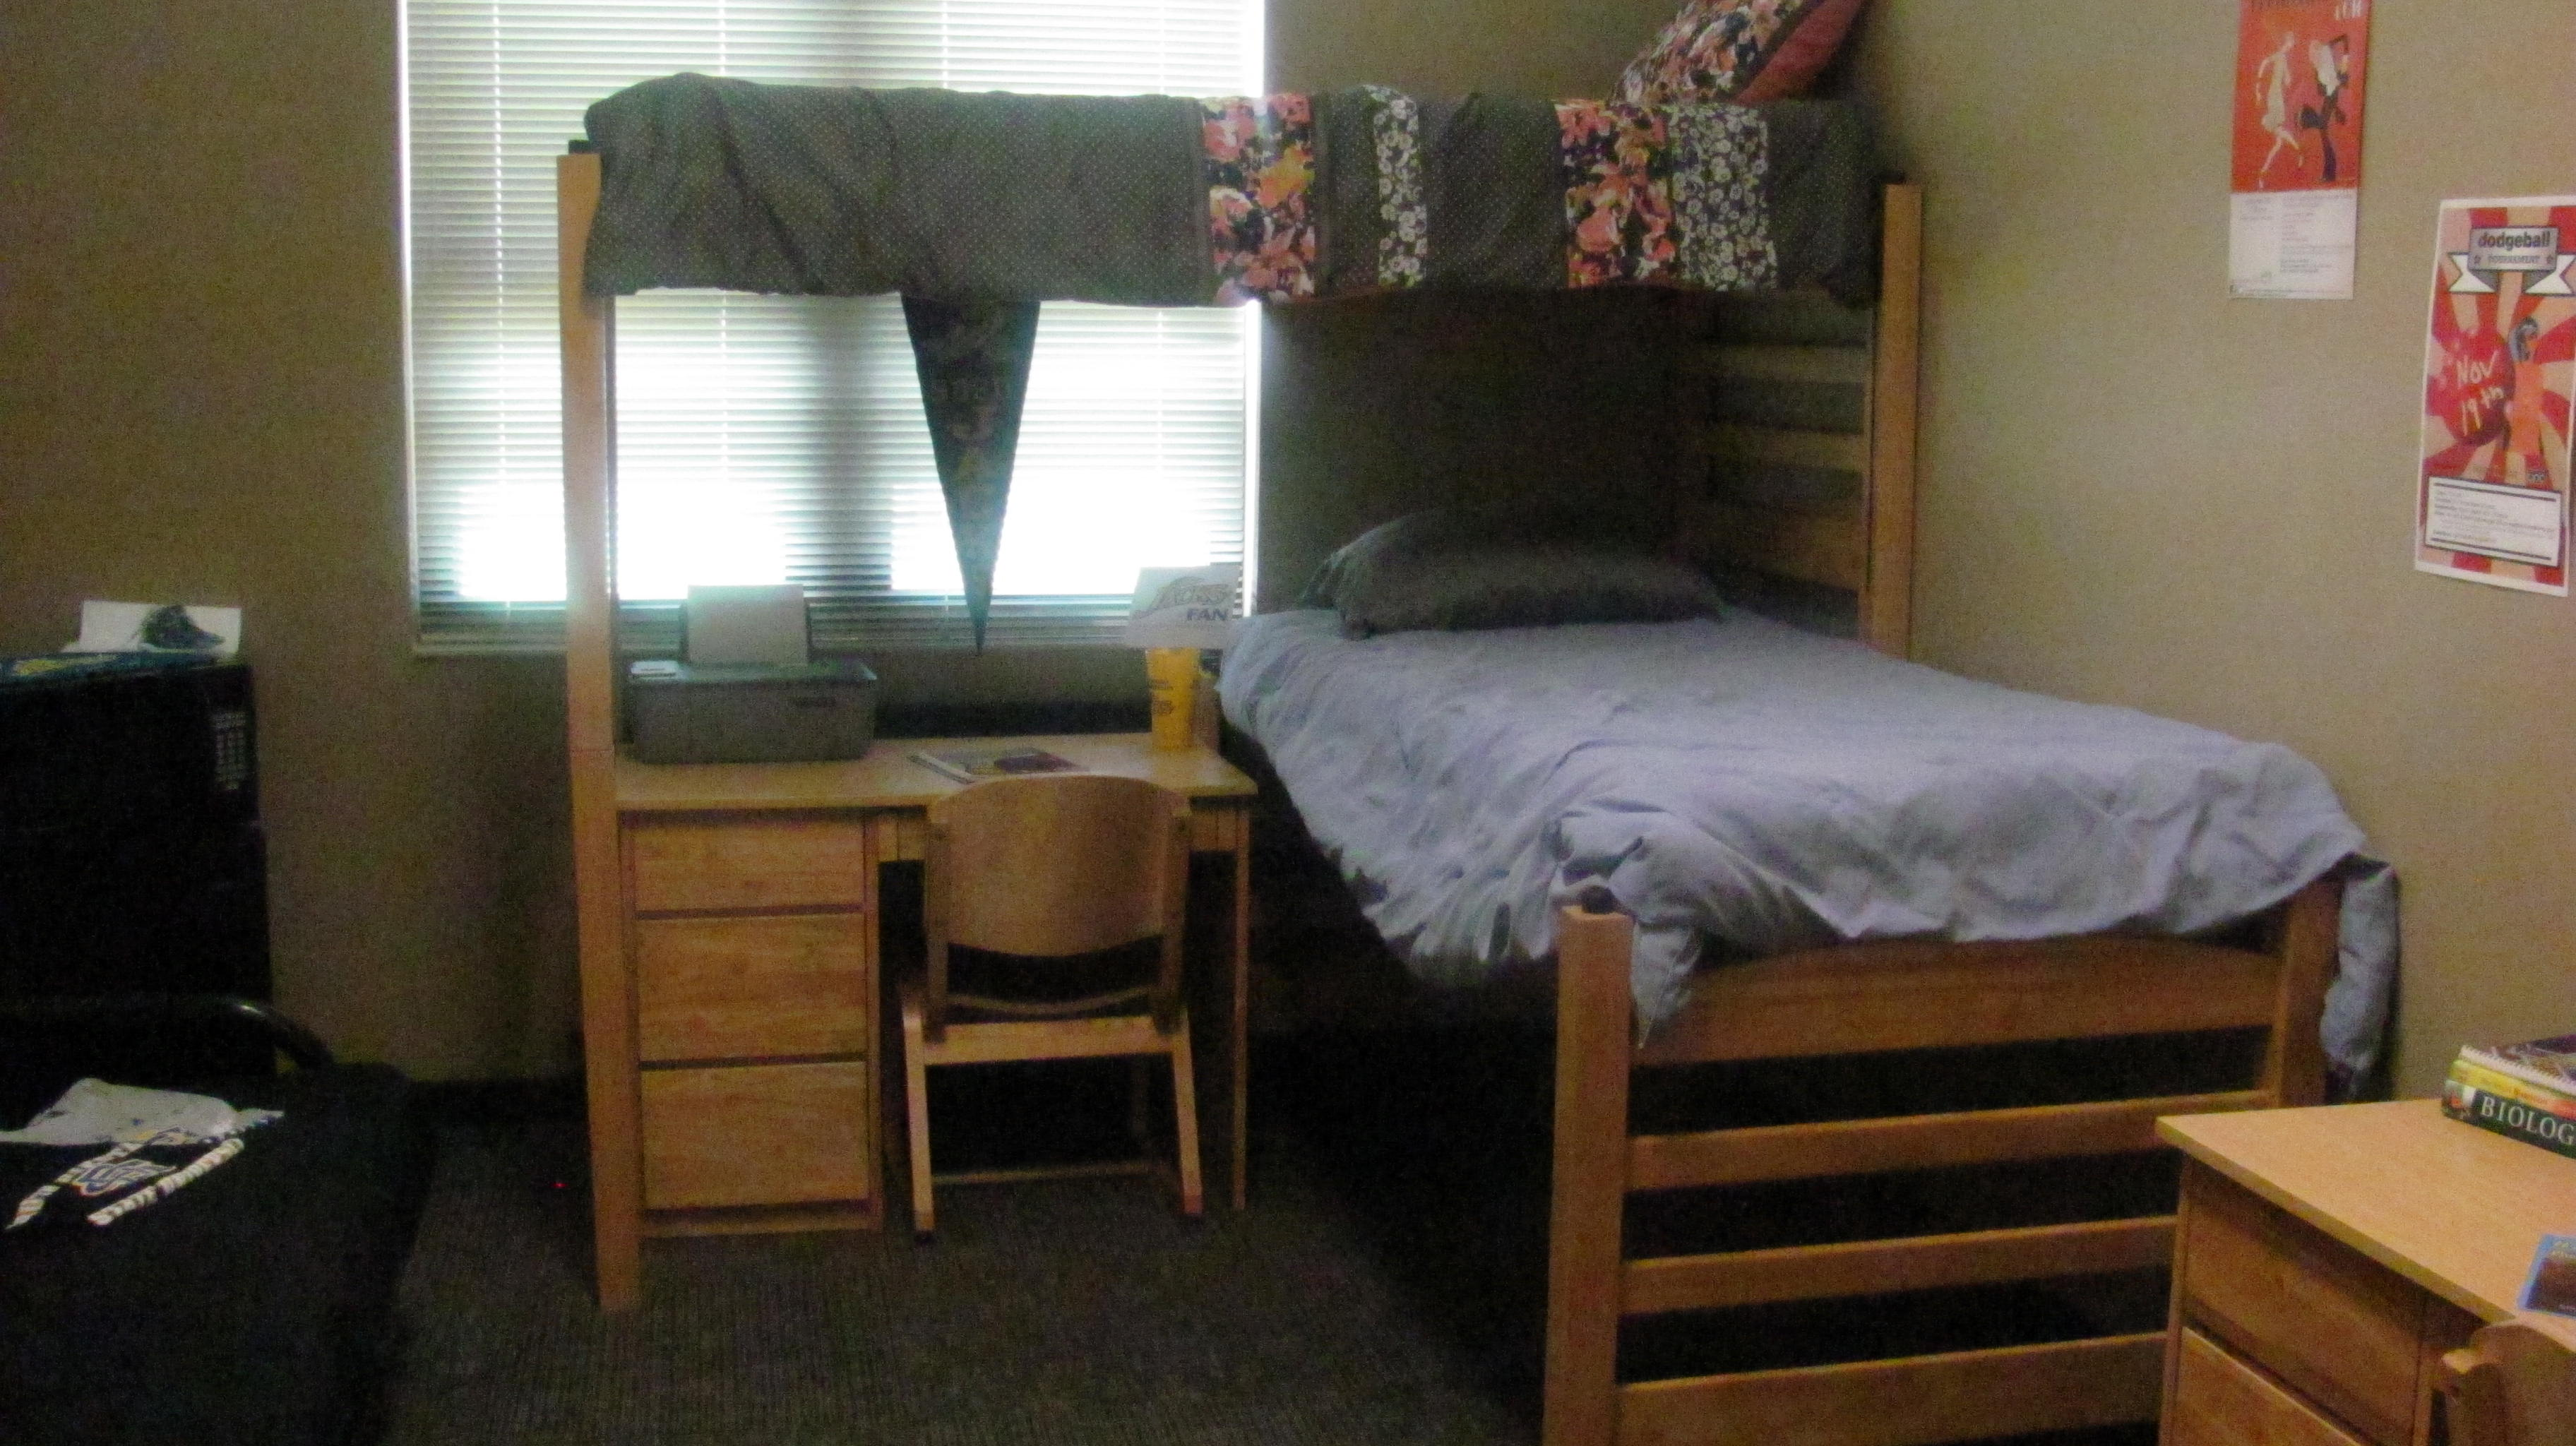 Room And Furniture Dimensions South Dakota State University